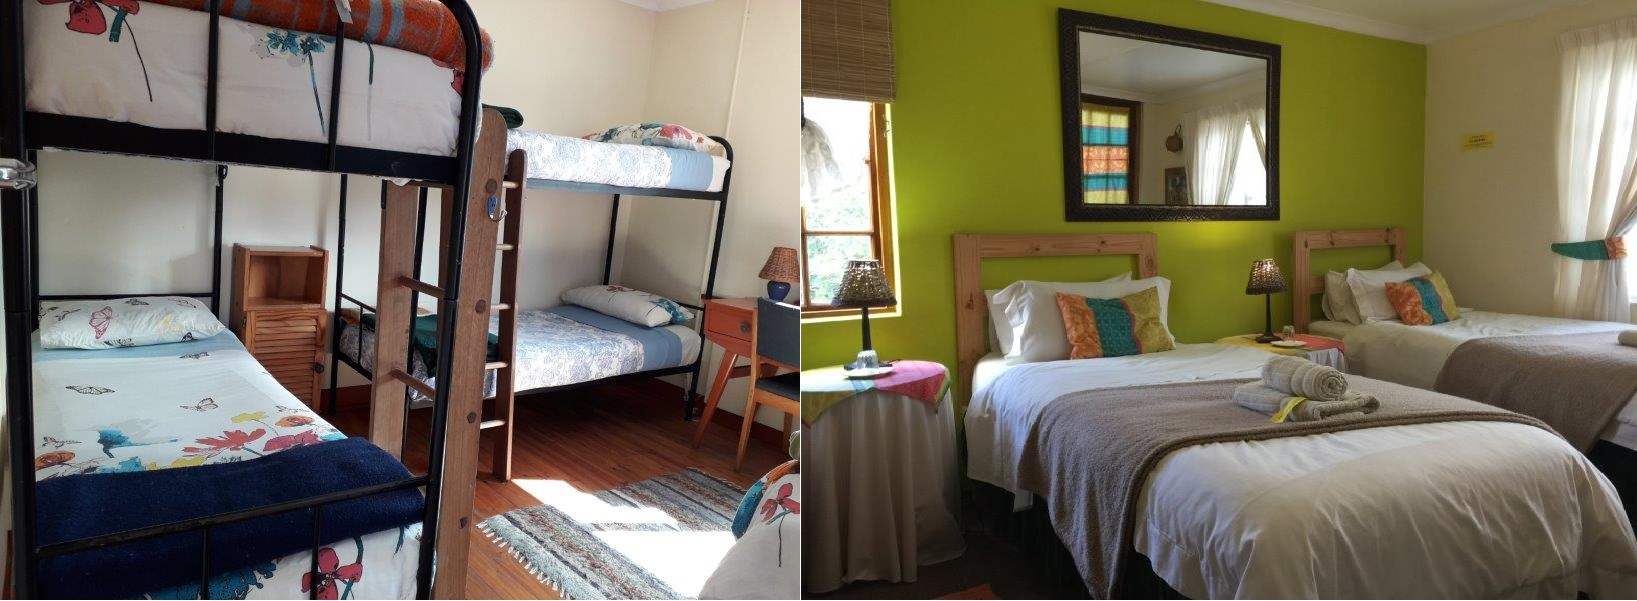 Backpackers accommodation option